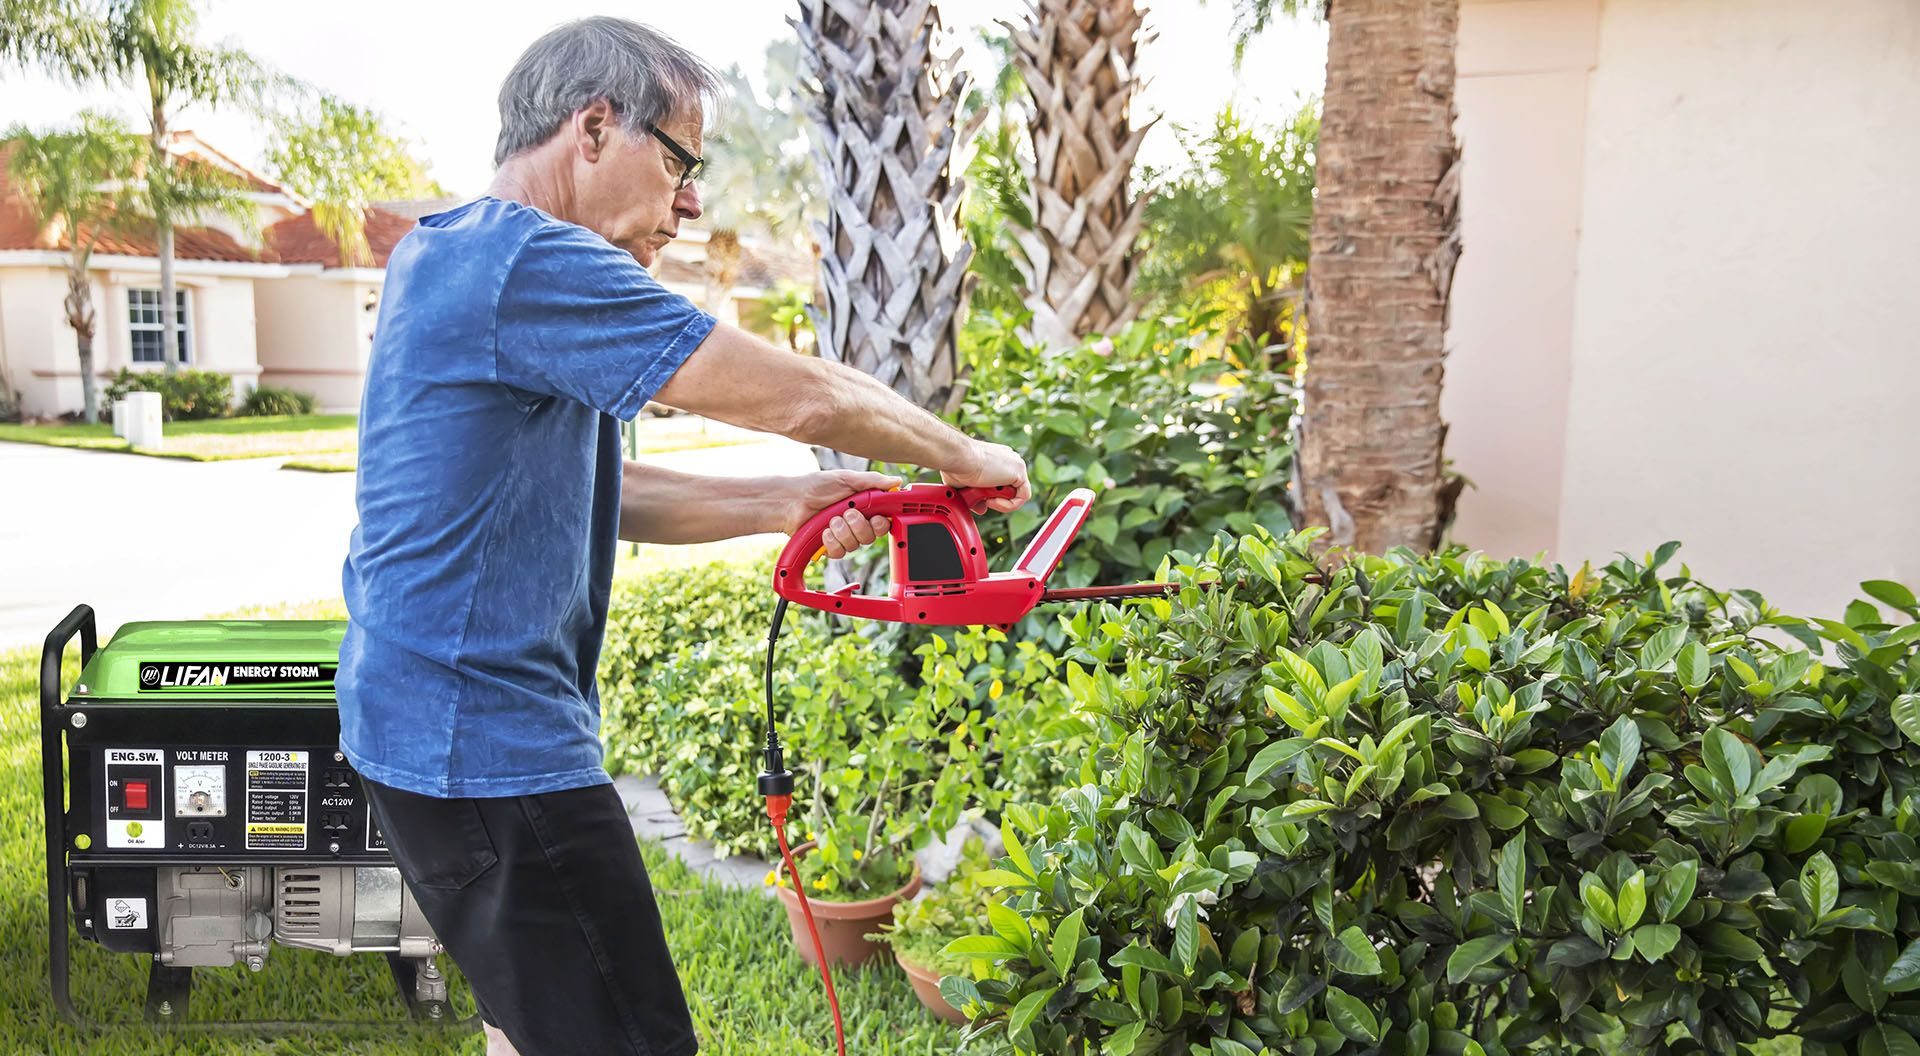 Senior caucasian man trims the hedges outside his home